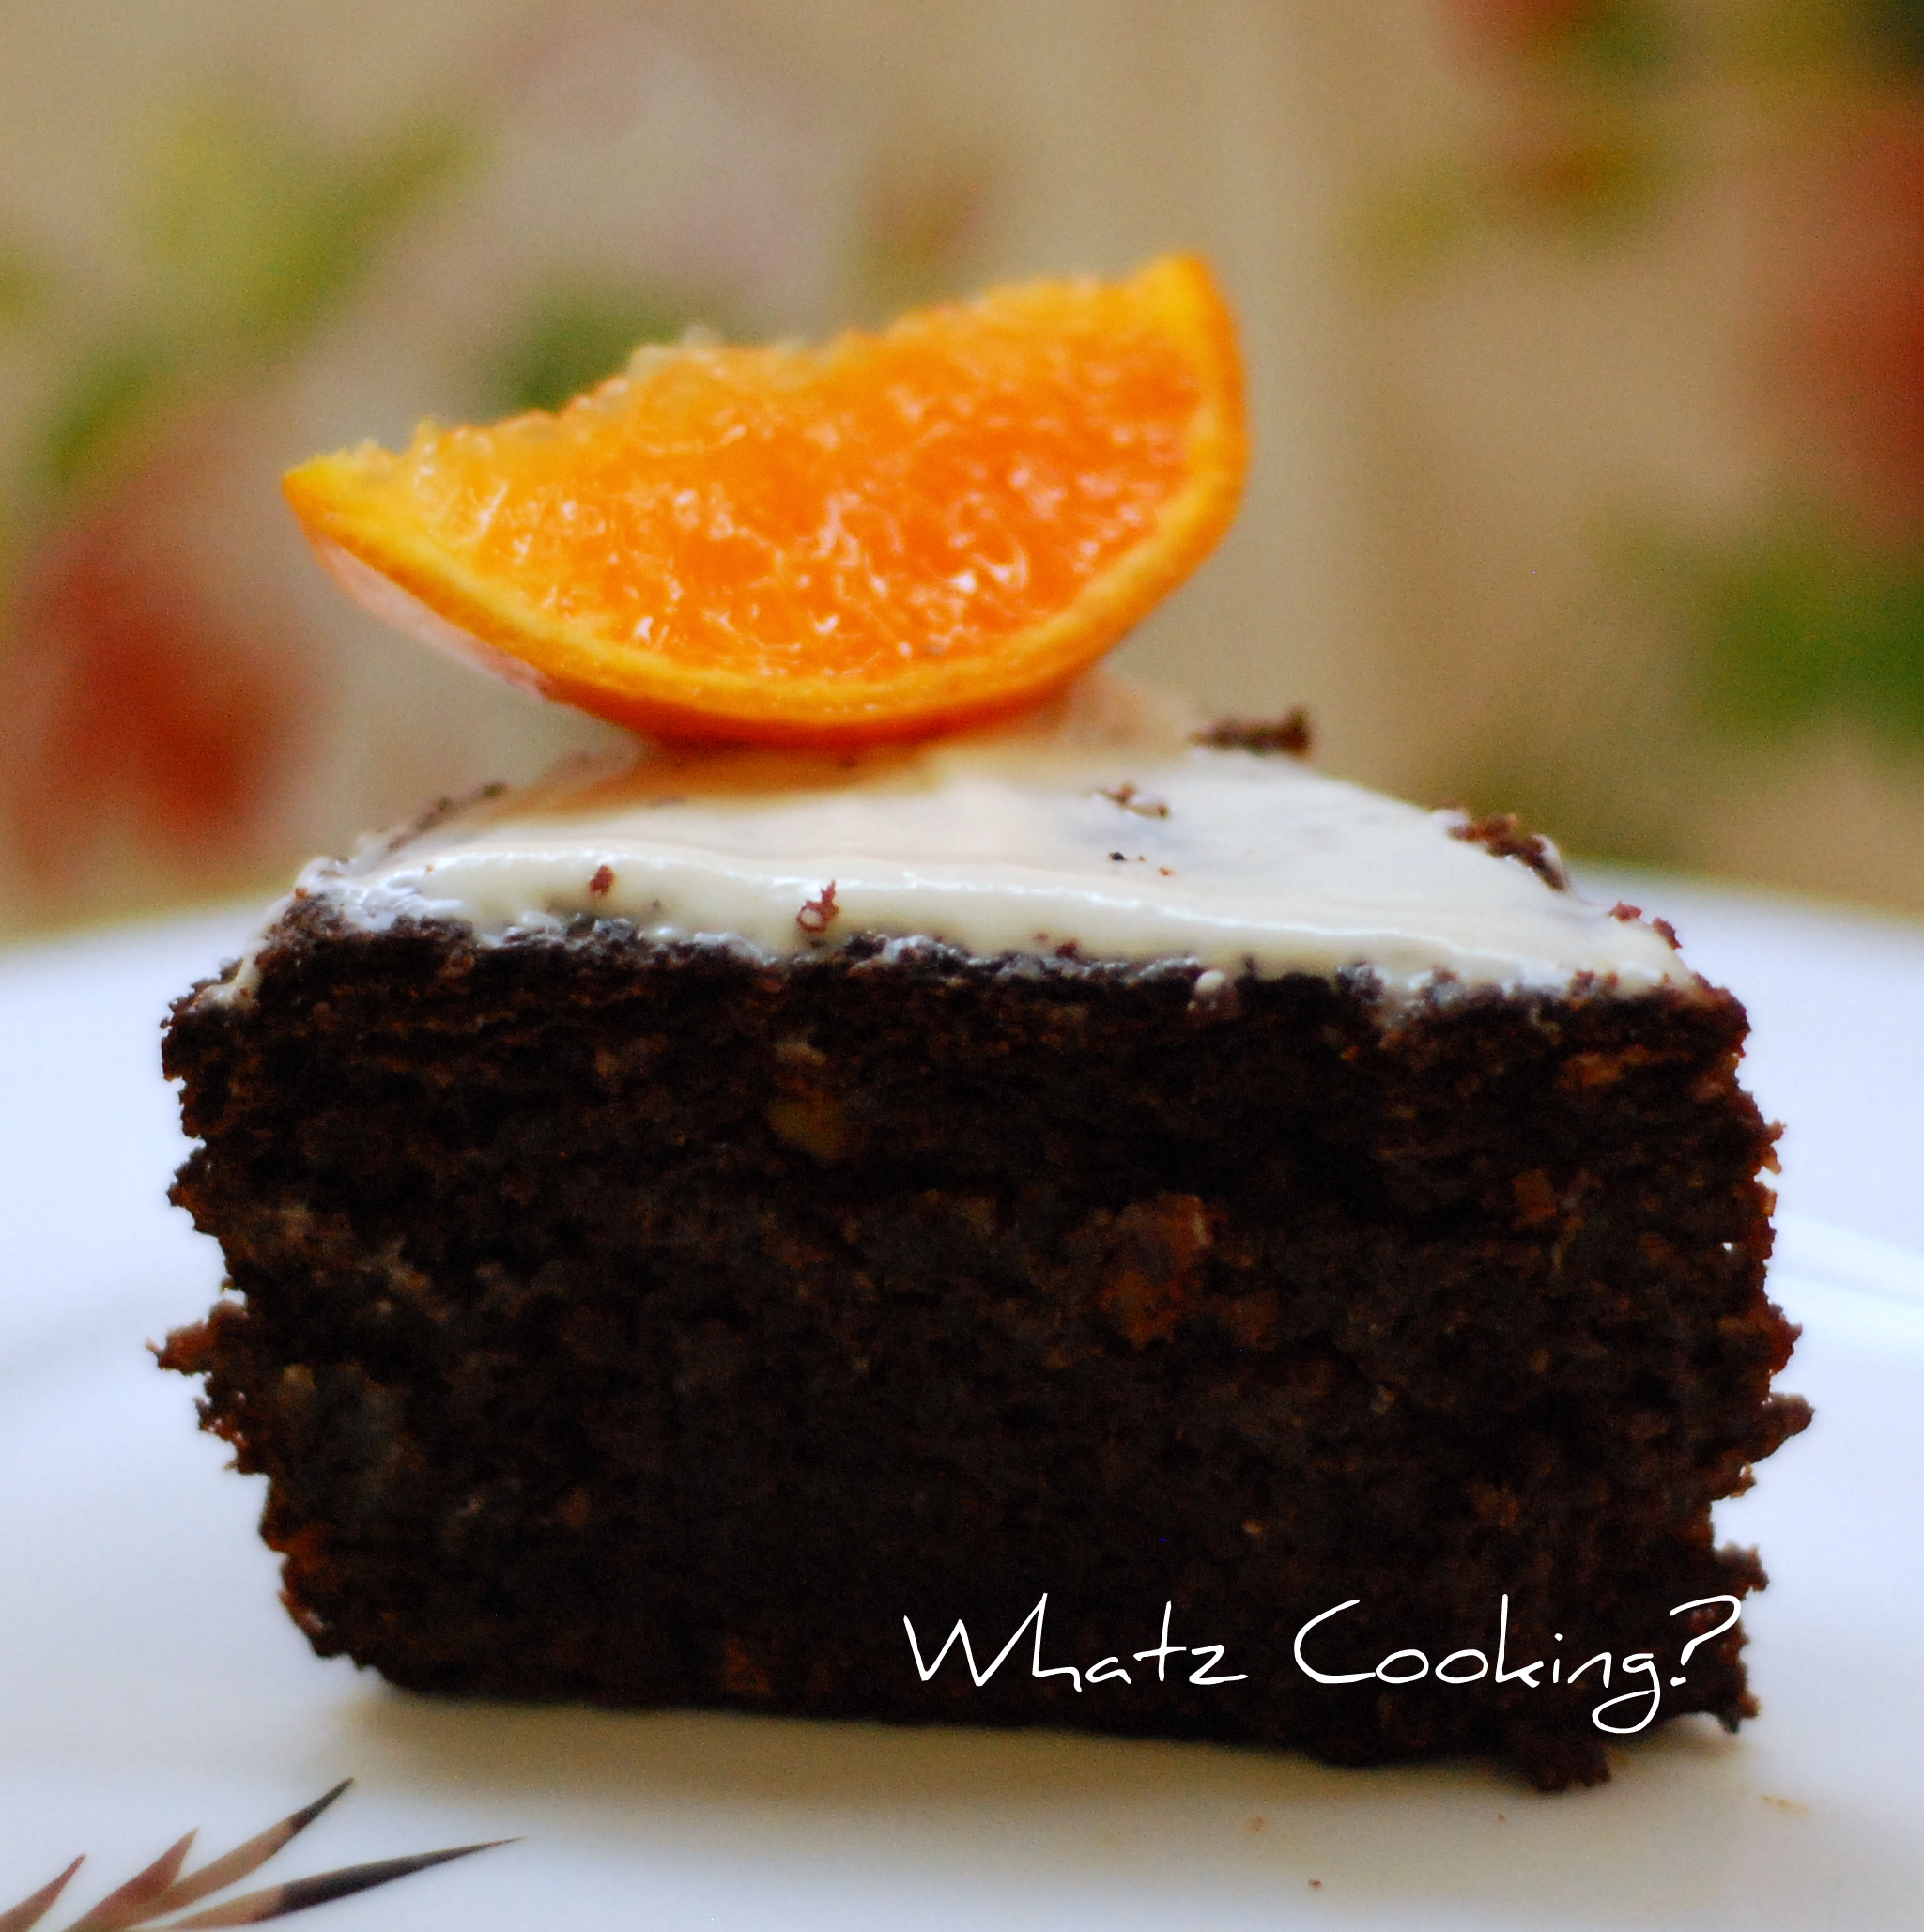 Chocolate-Orange Cake - What's Cooking?